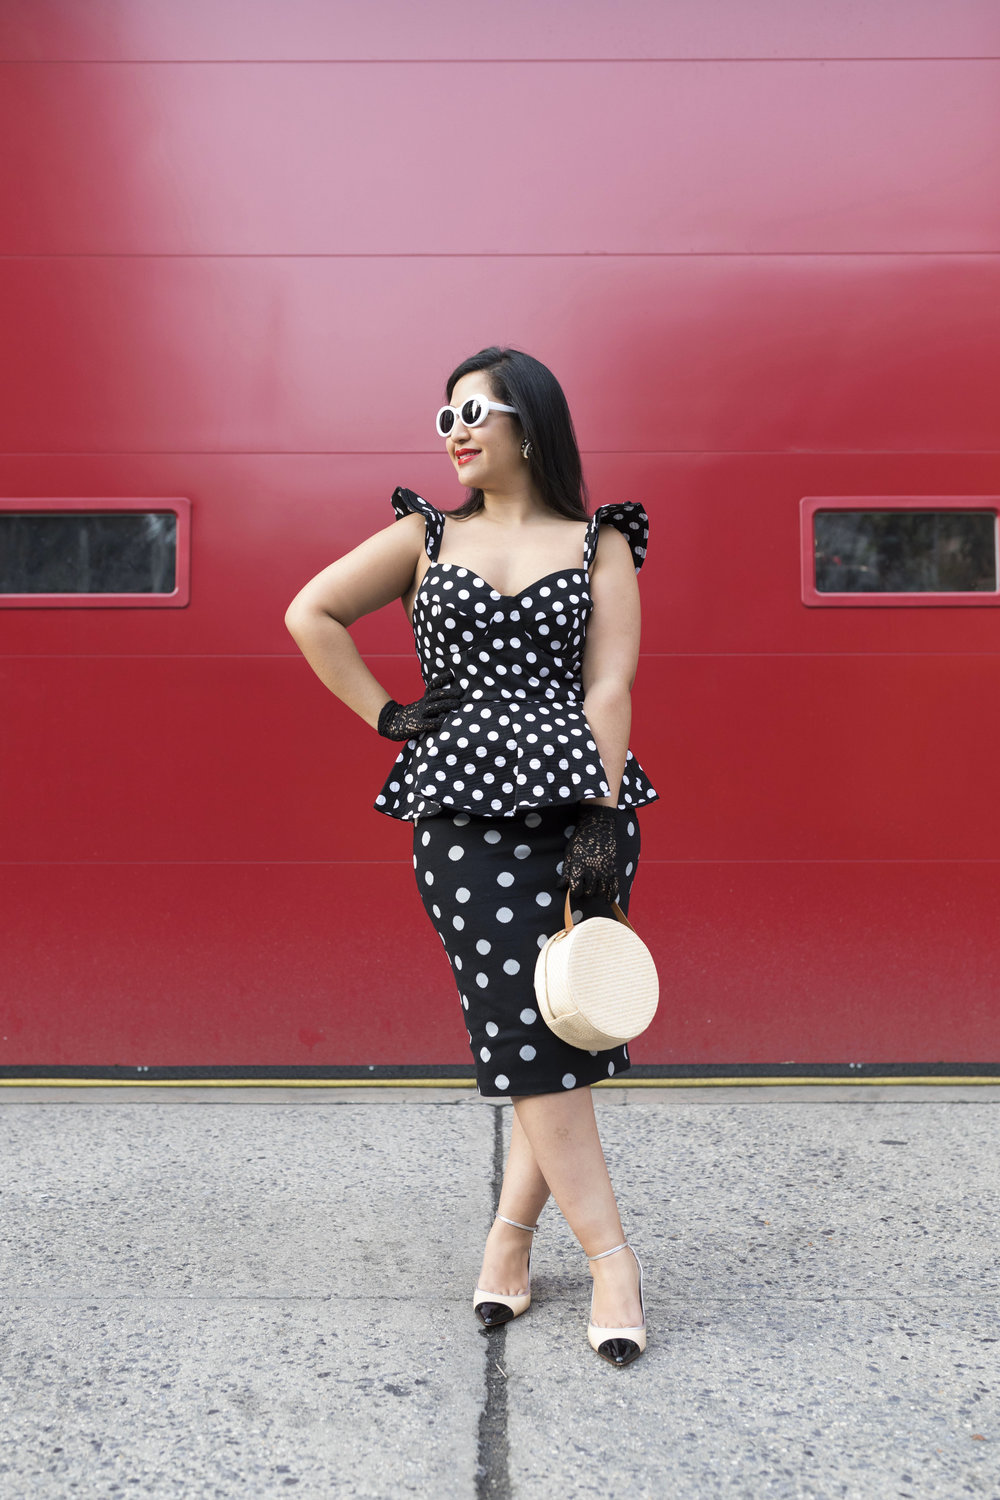 Krity S x Polka Dots x Spring Outfit4.jpg